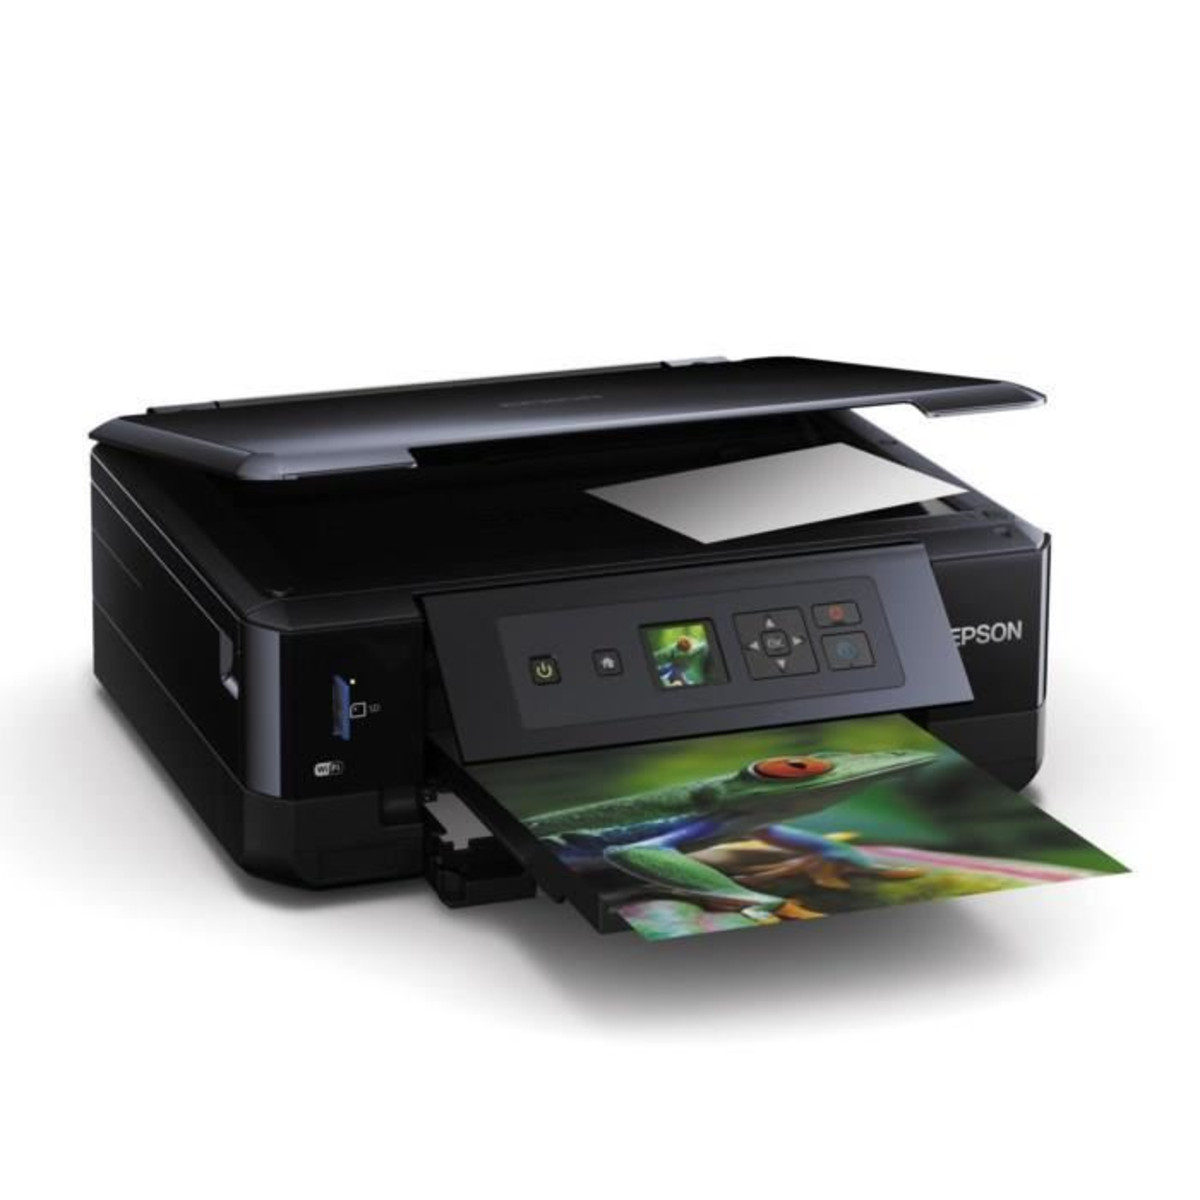 Epson XP-530 Inkjet Printer